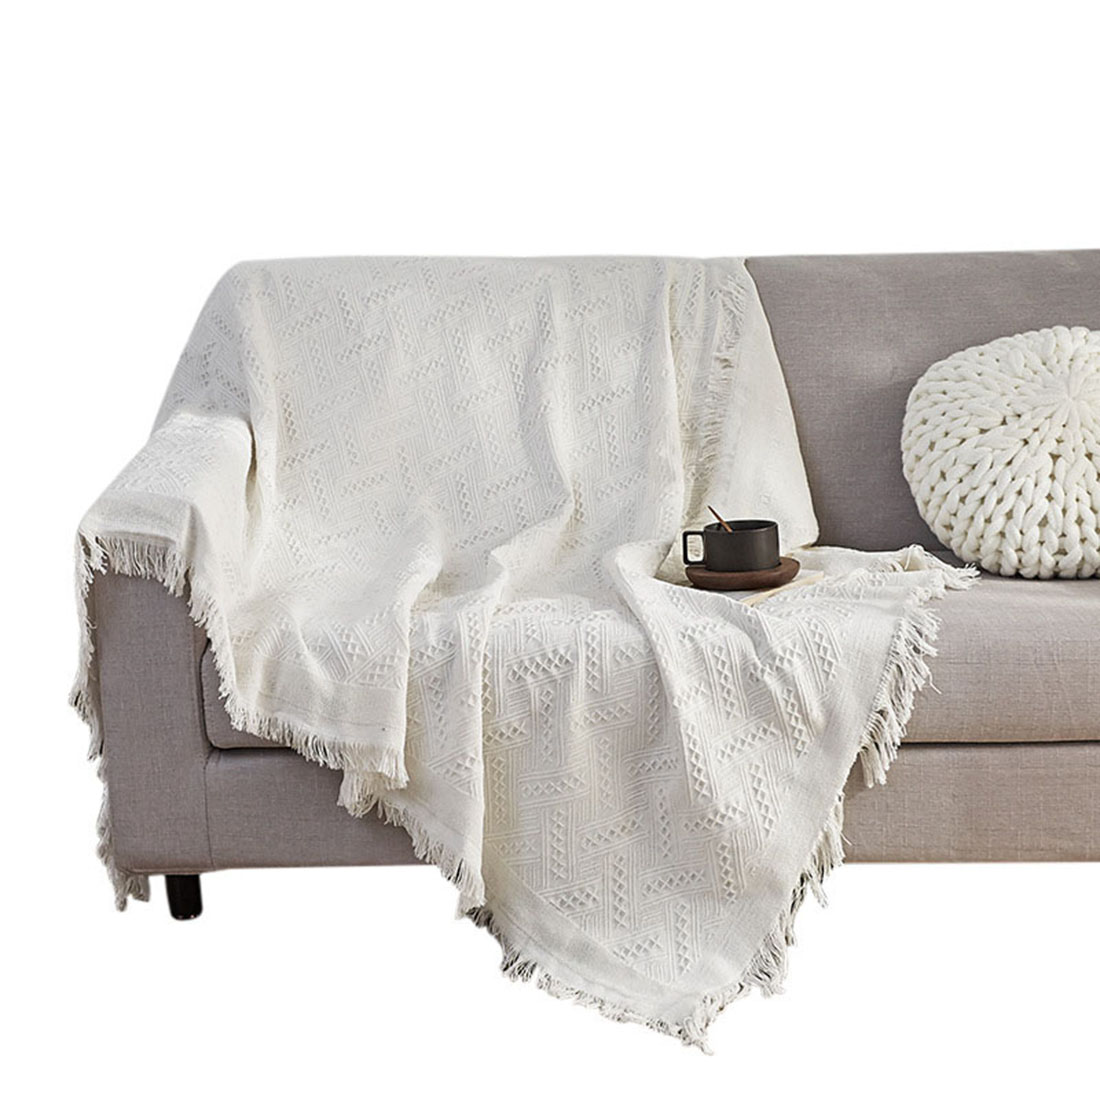 Blanket Sofa Cover: Newly Sofa Cover Couch Cover Thick Slip Resistant